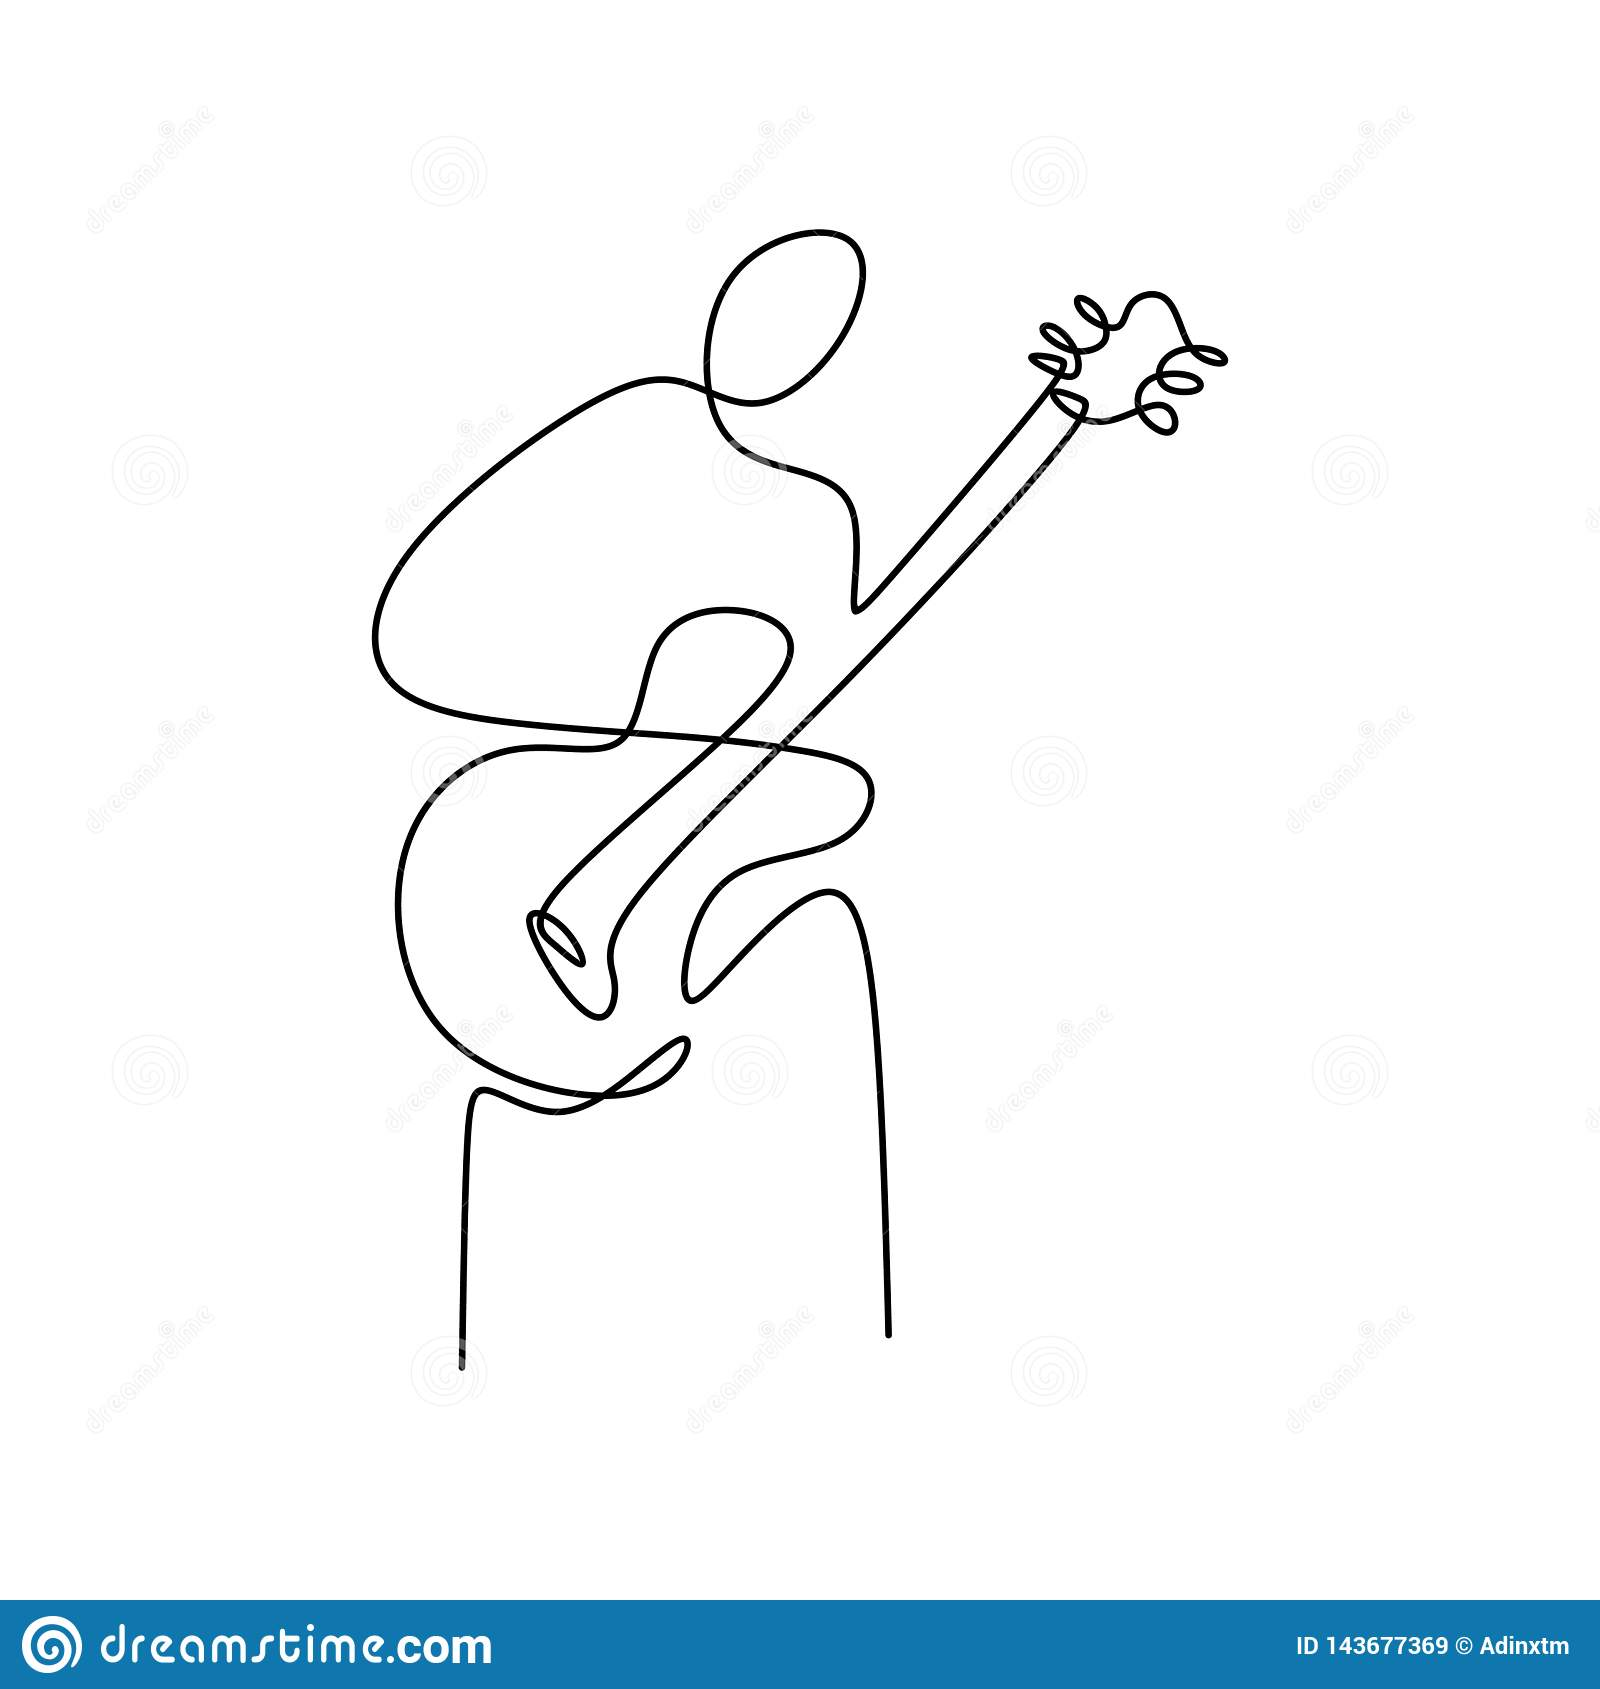 Continuous Line Drawings Playing The Guitar With A Minimalist